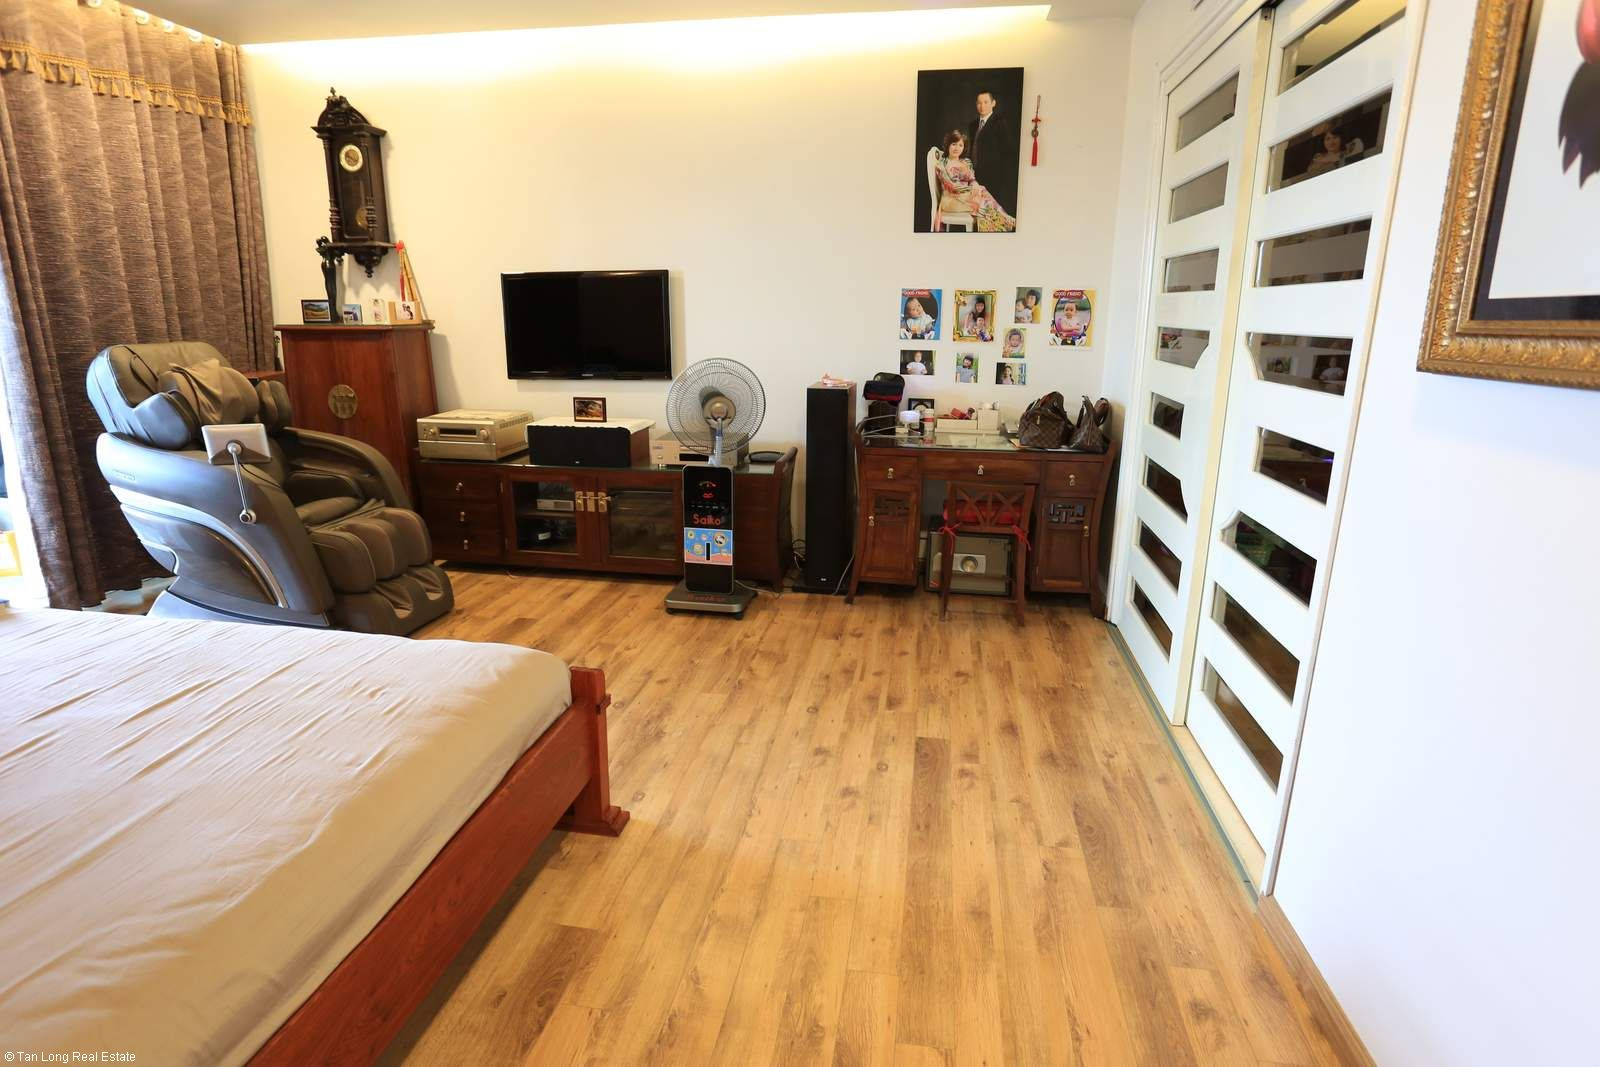 3 bedroom apartment in 671 Hoang Hoa Tham rental. 2